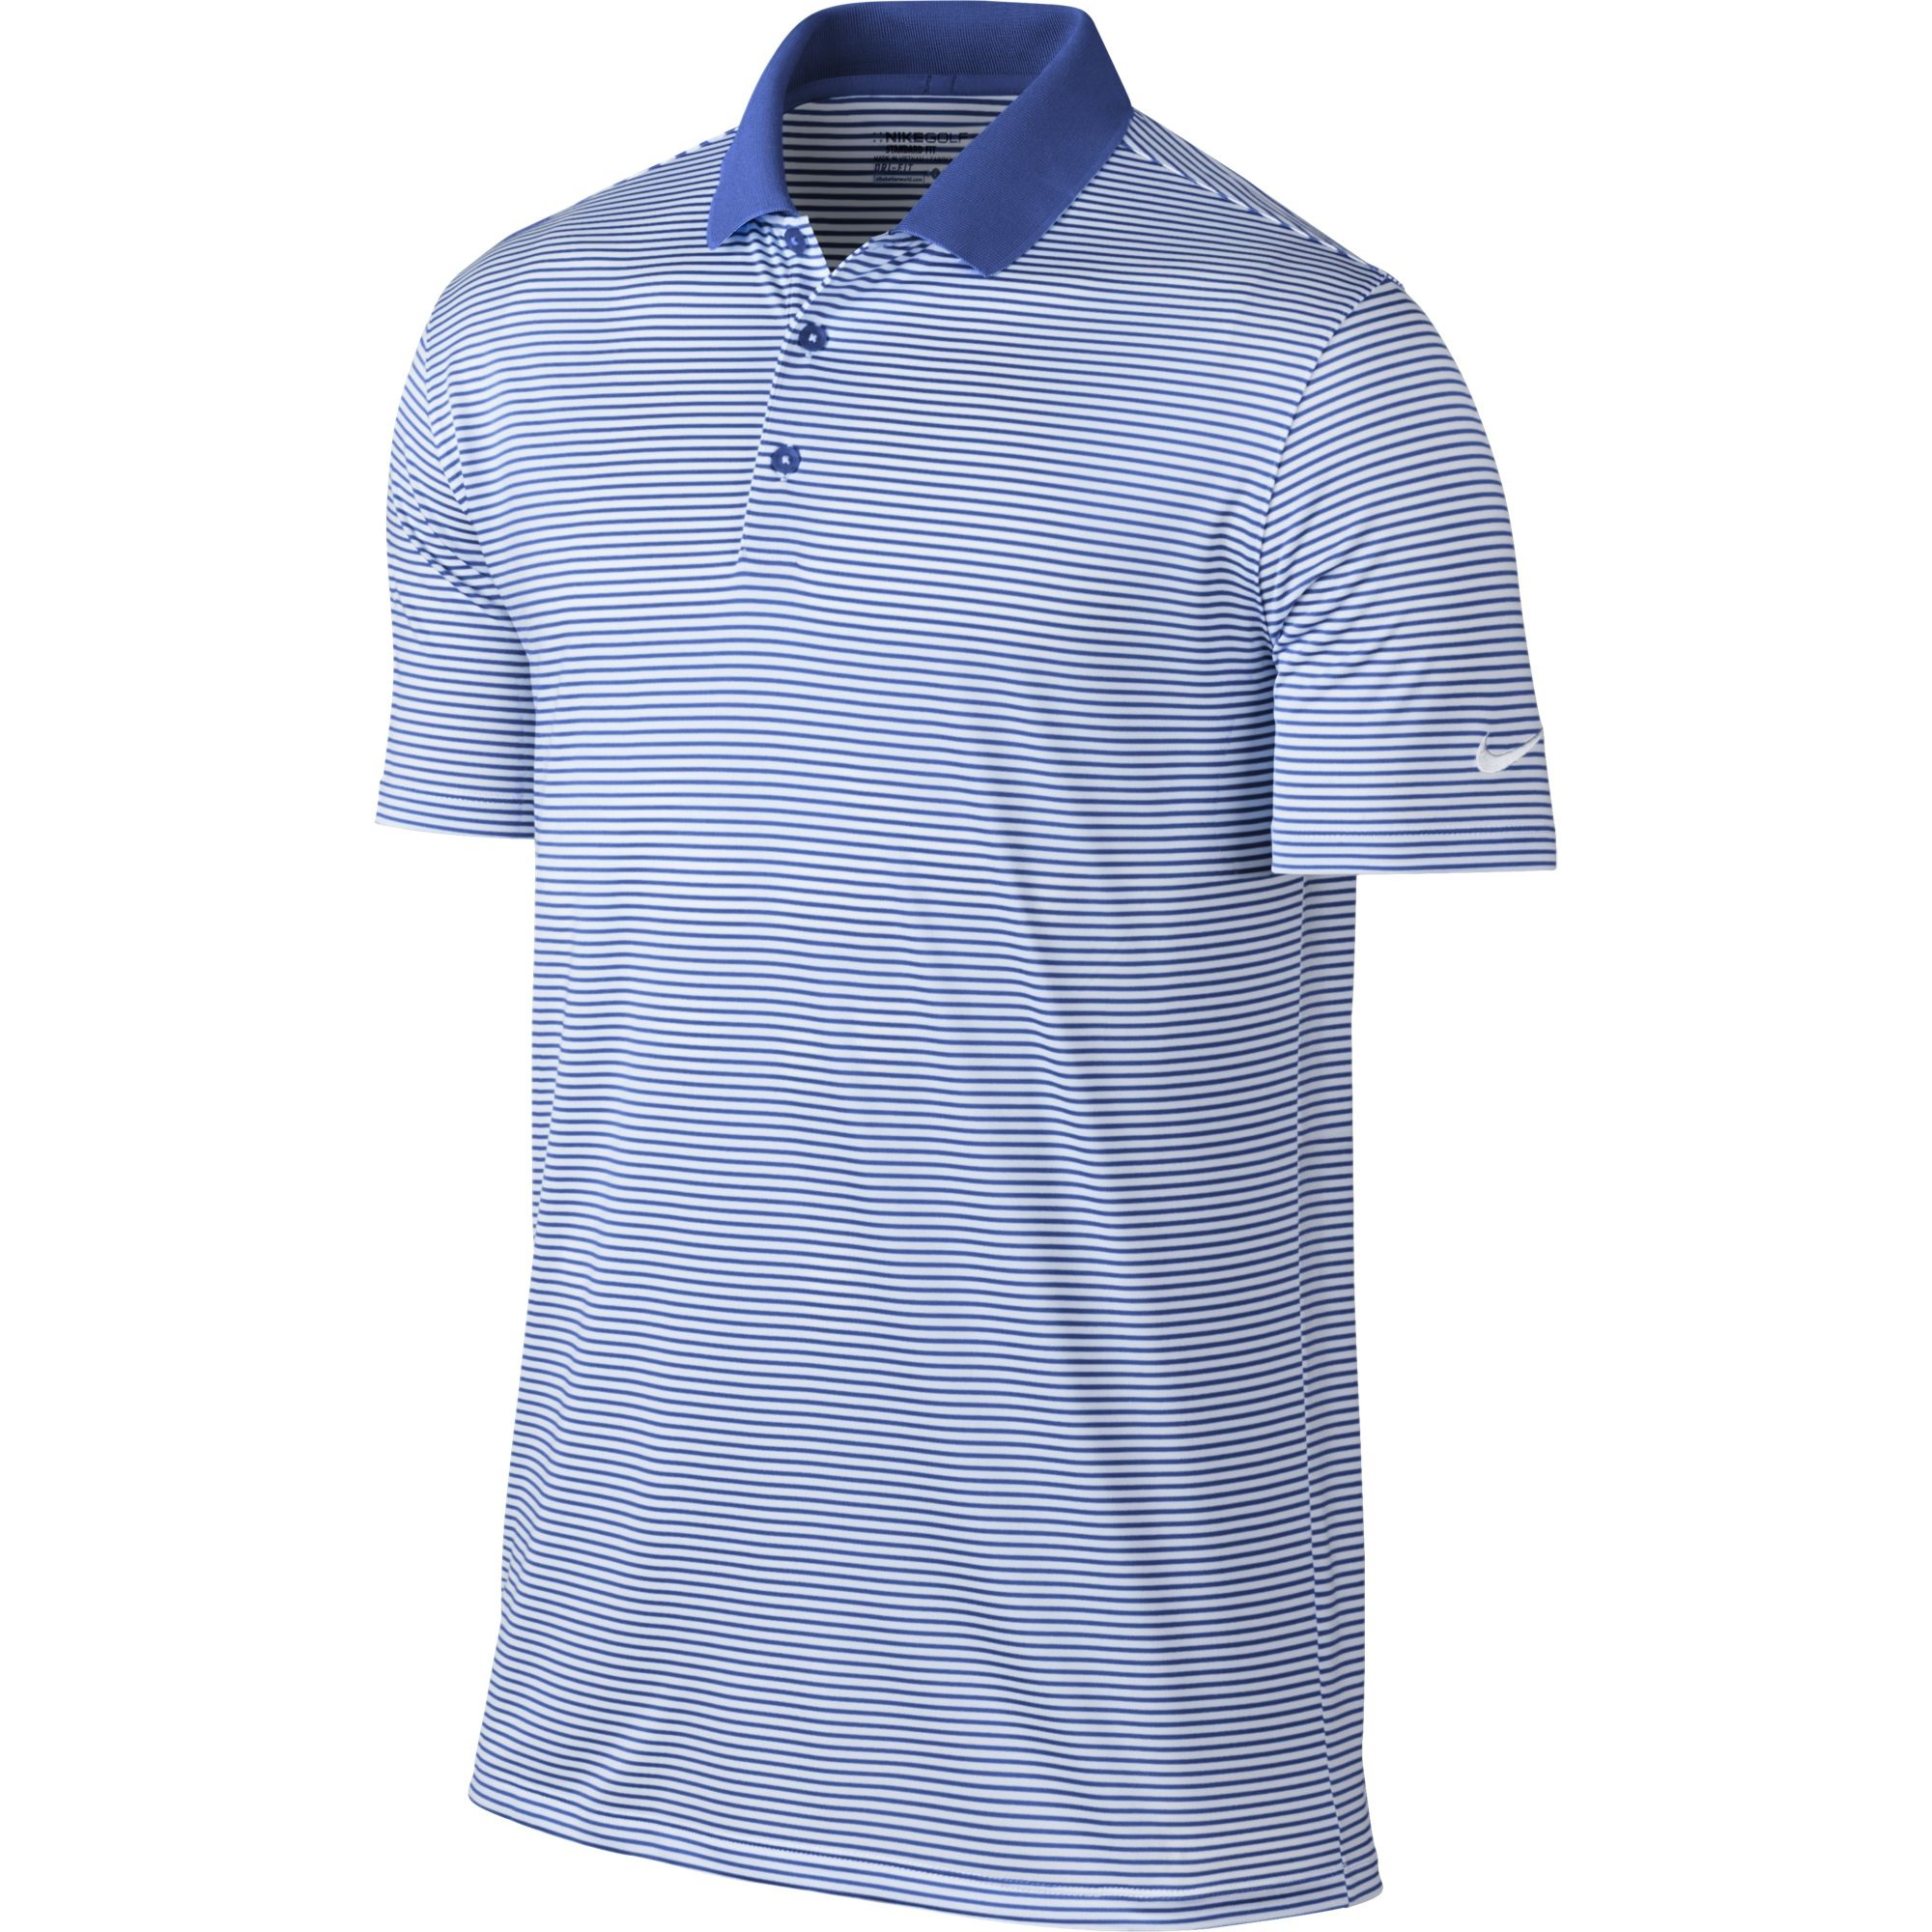 Game on closeouts sporting goods - Nike Golf Closeout Men 039 S Victory Mini